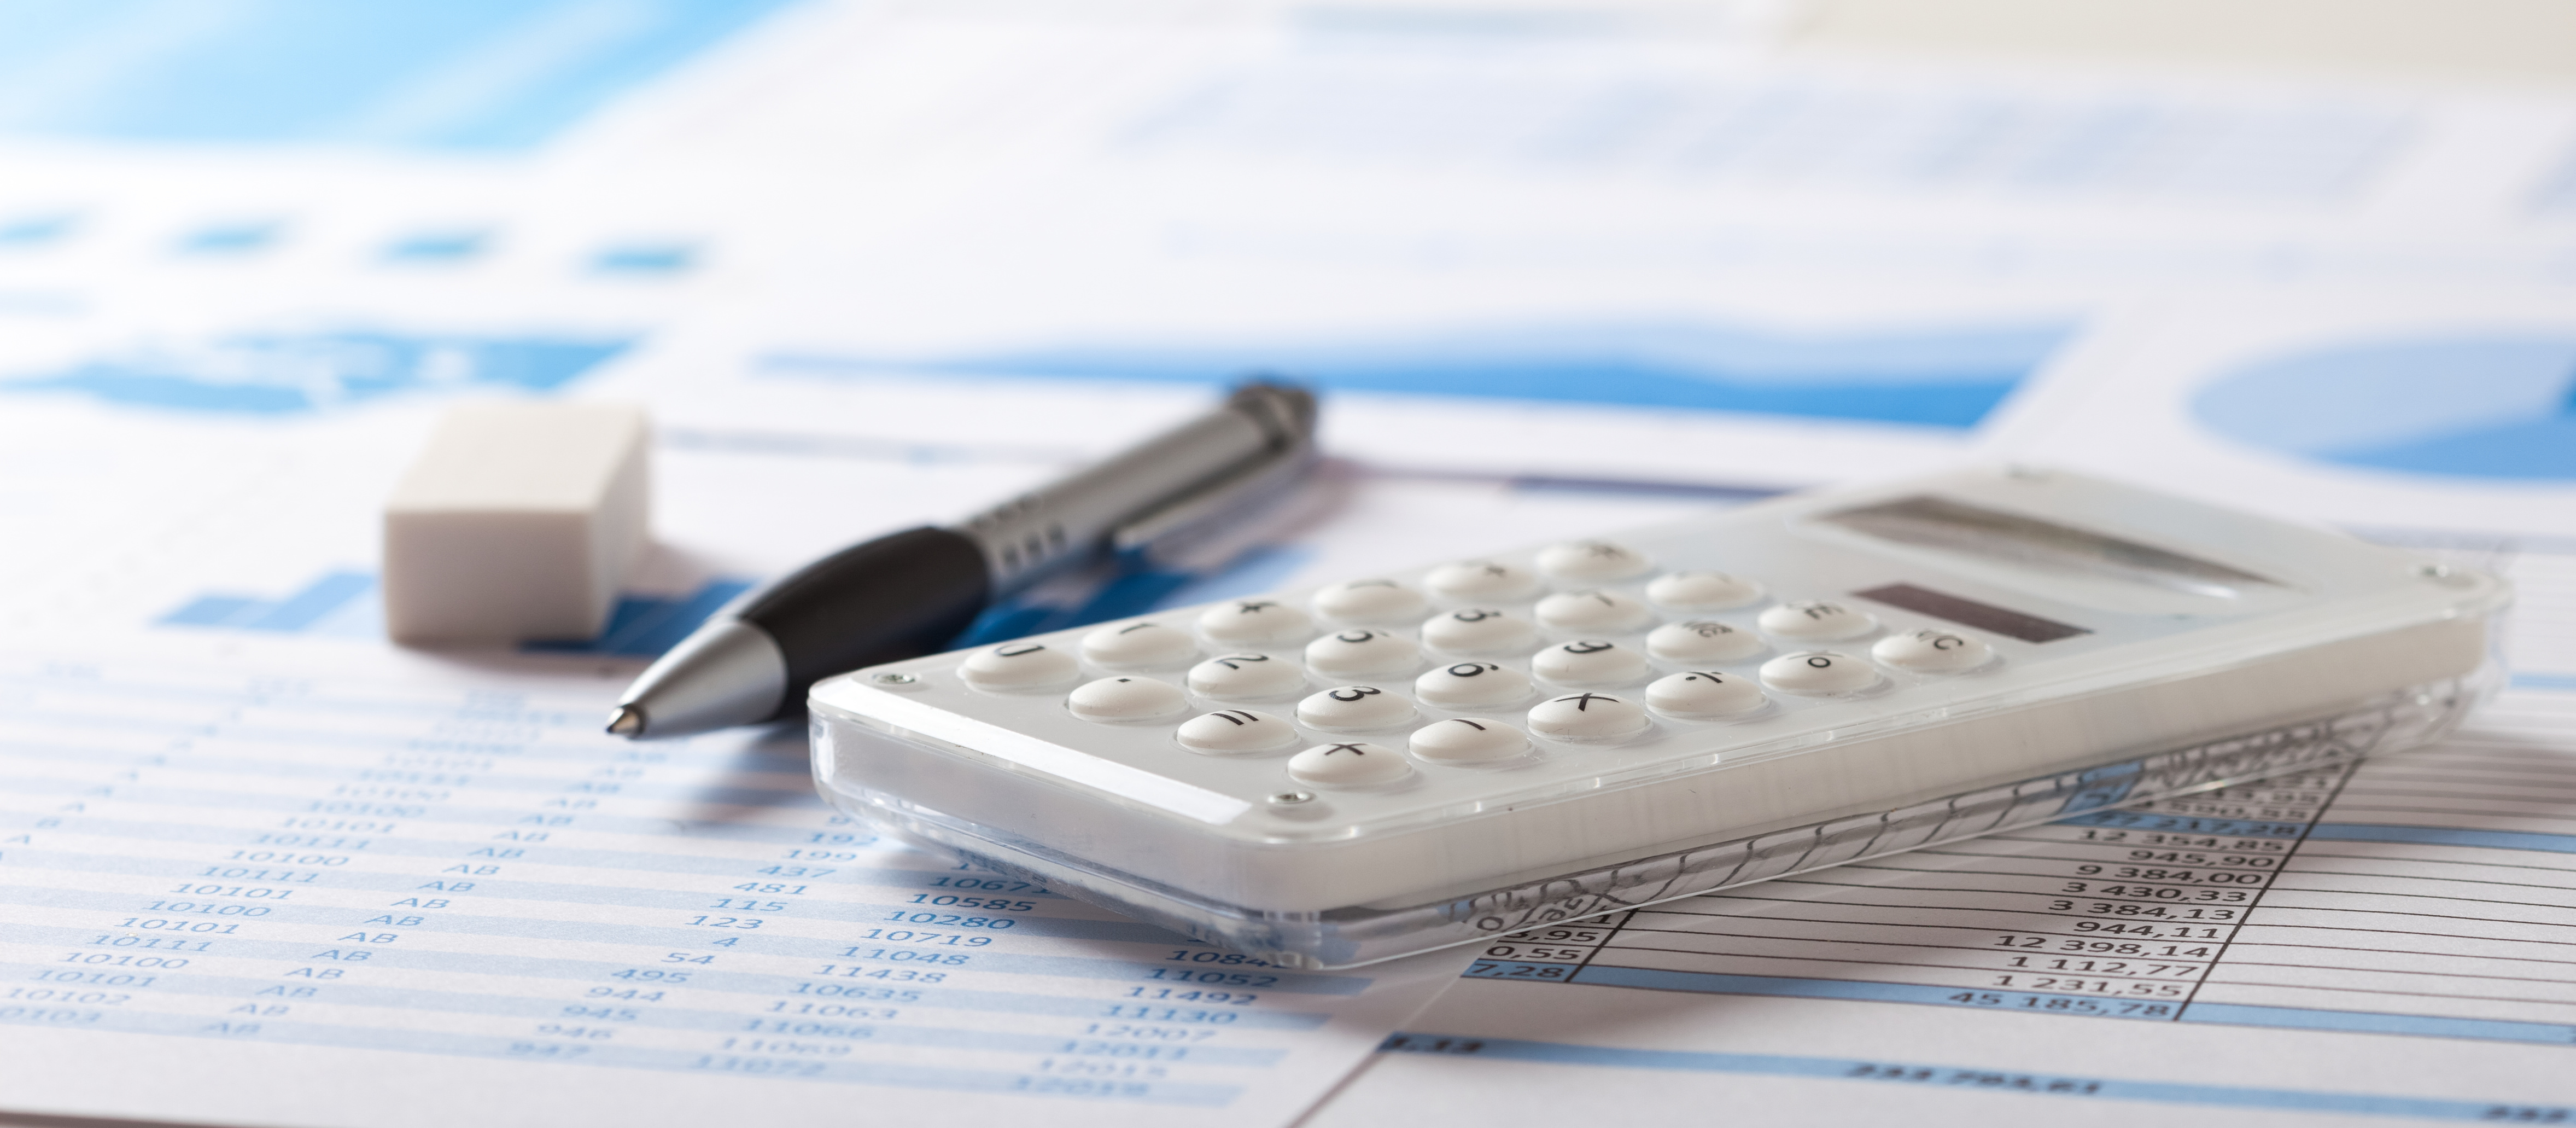 Accounting concept: pen, calculator and paperwork